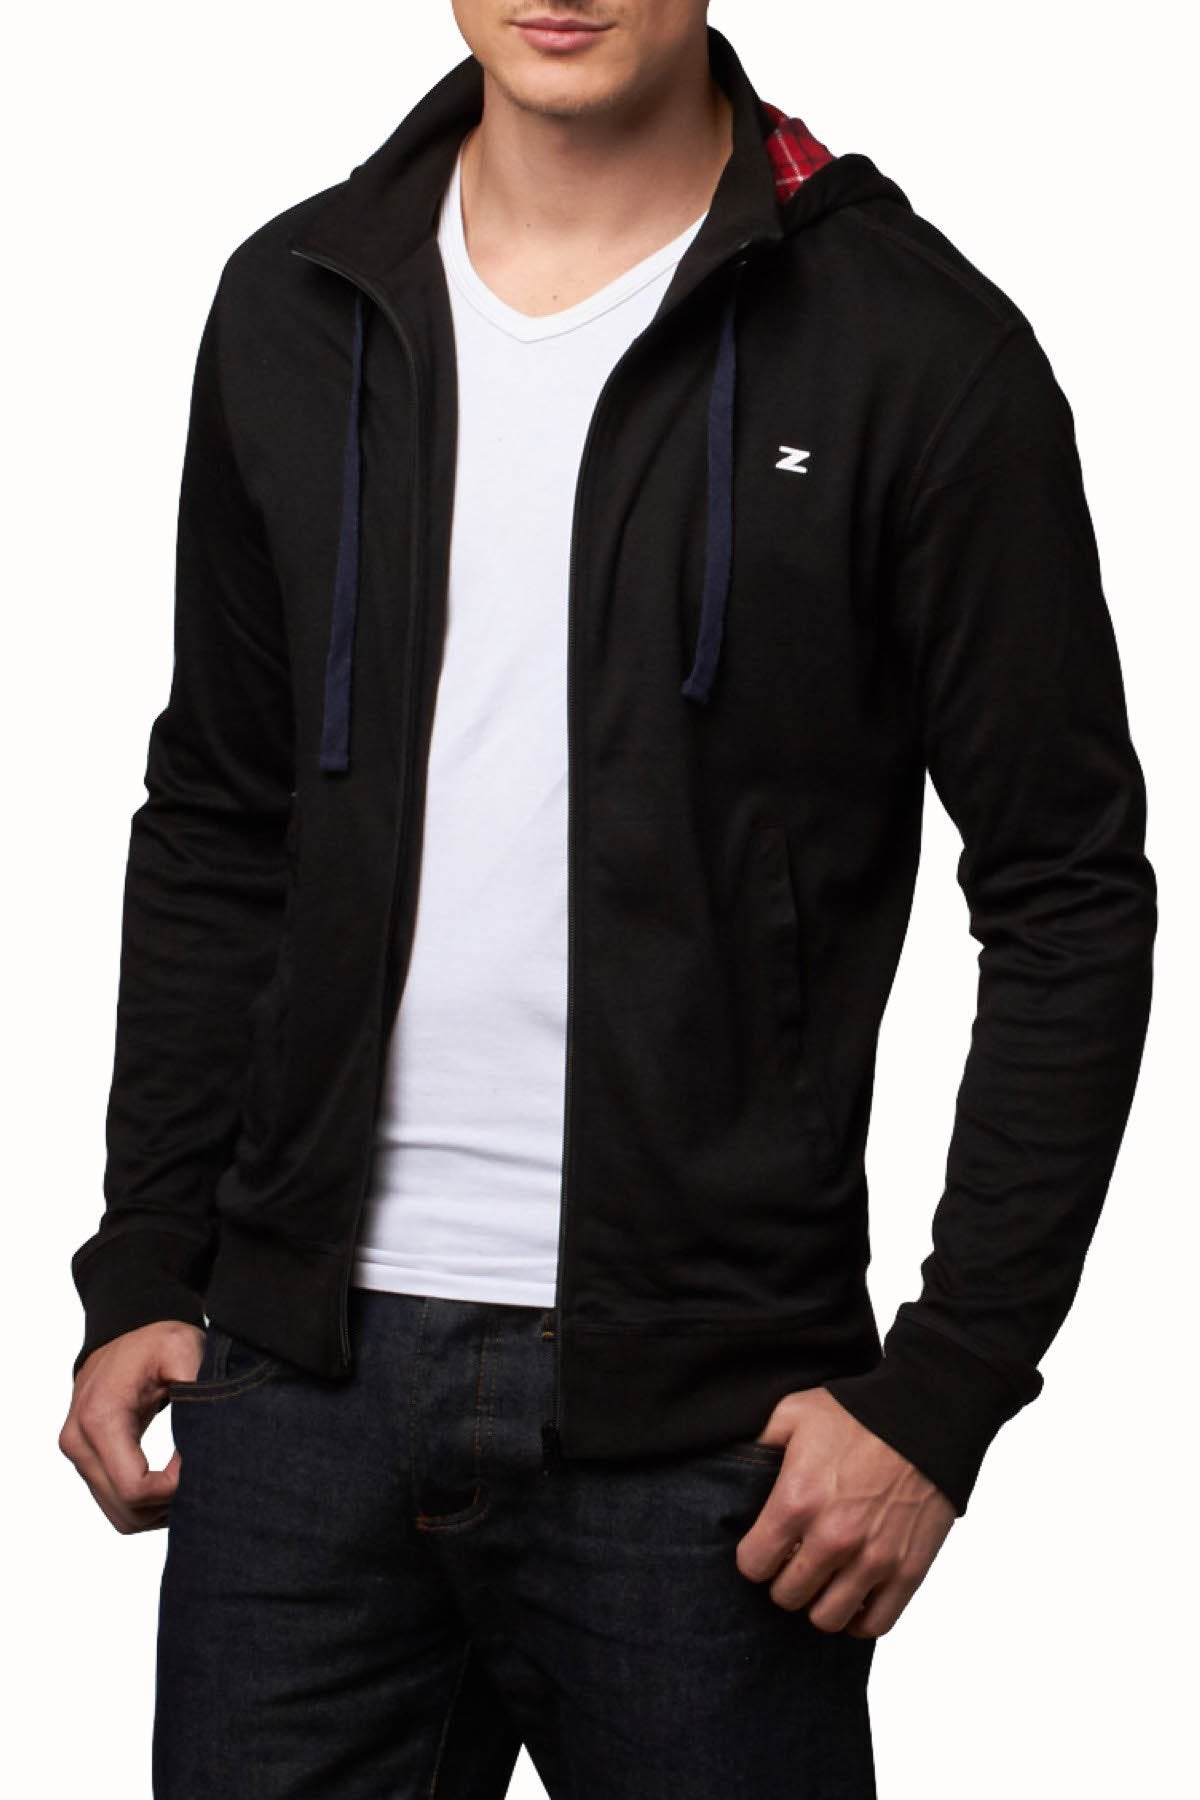 Zutoq Zardaine Black Zipper Jacket